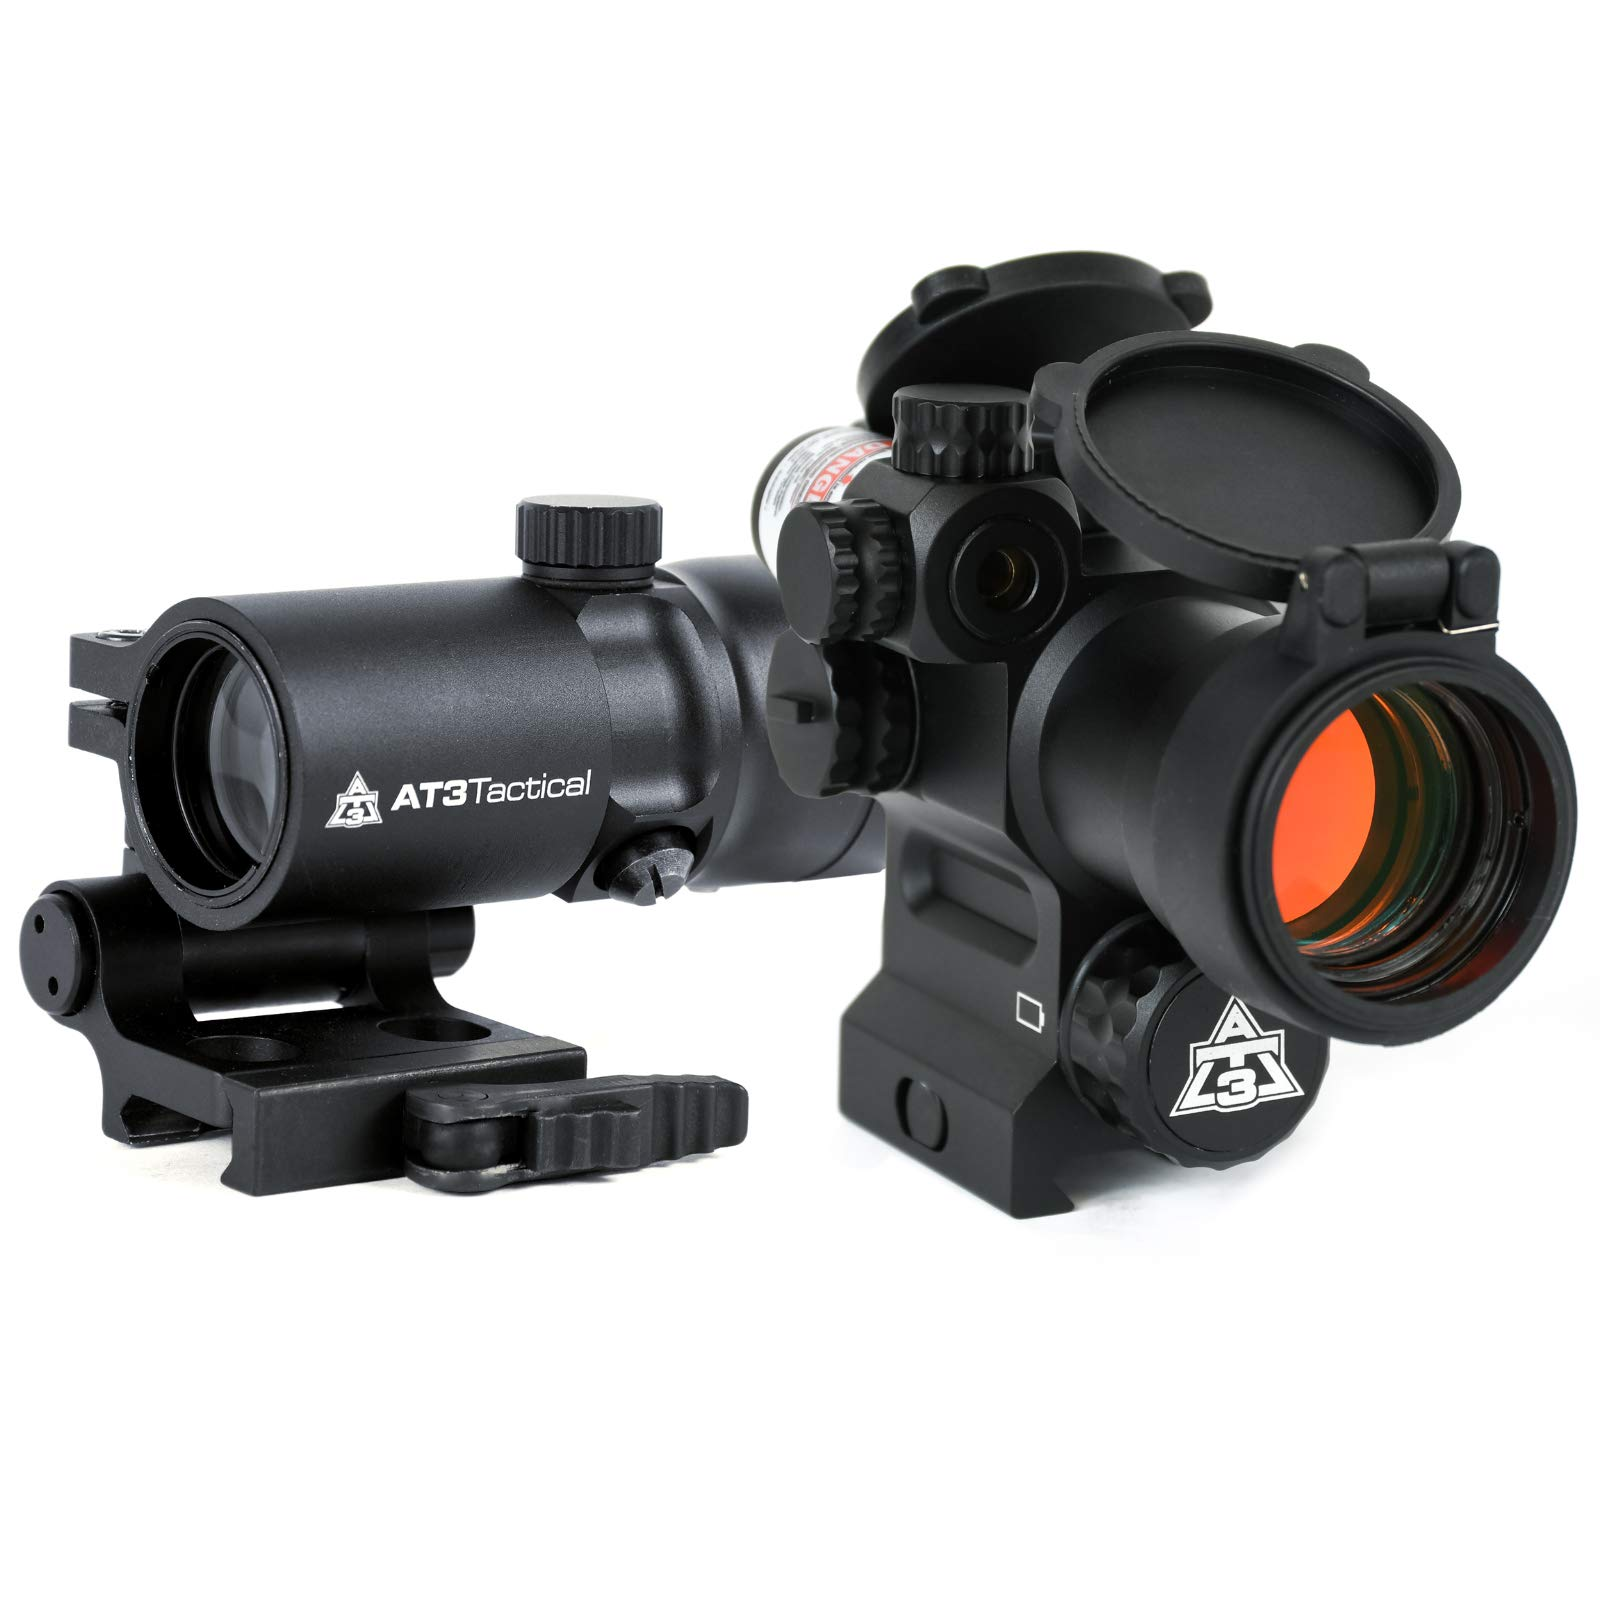 AT3 4X Magnified Red Dot with Laser Sight Kit - 2 MOA Red Dot with Laser Sight and 4X Magnifier (Green Laser) by AT3 Tactical